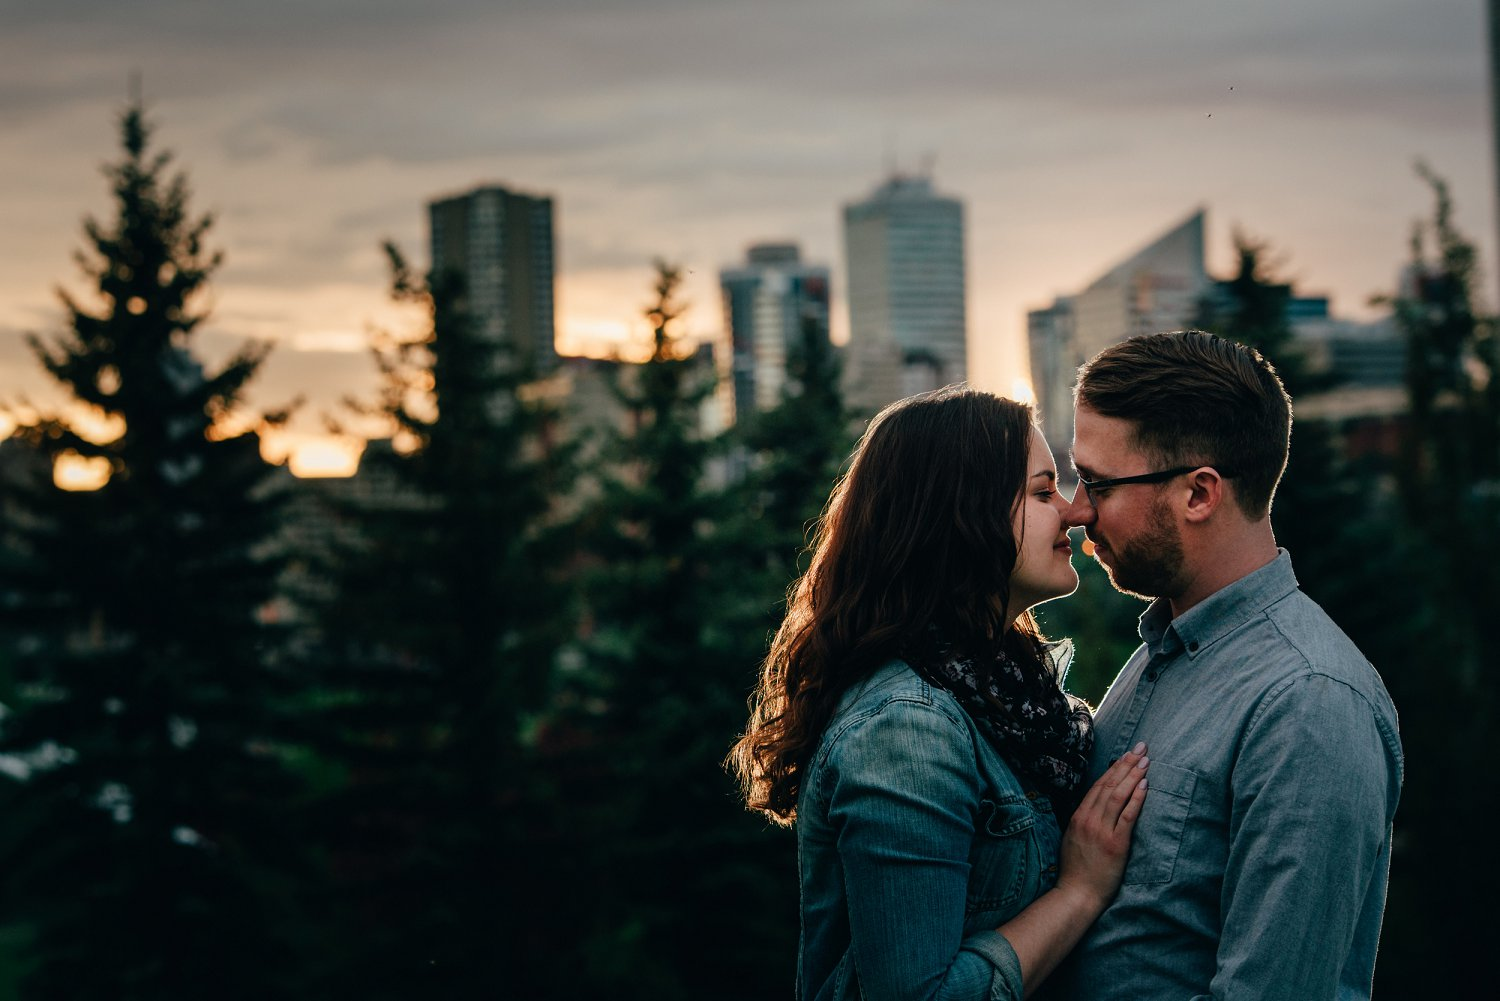 If you are newly engaged and have been searching for Edmonton wedding photographers or if you are looking for a photographer to document your family adventures, you've come to the right place! We would love to meet you, hear your story and preserve your one-of-a-kind moments through a series of timeless photographs. Get to know us a little more here. Contact us at info@earlgrayimages.coml or click here.